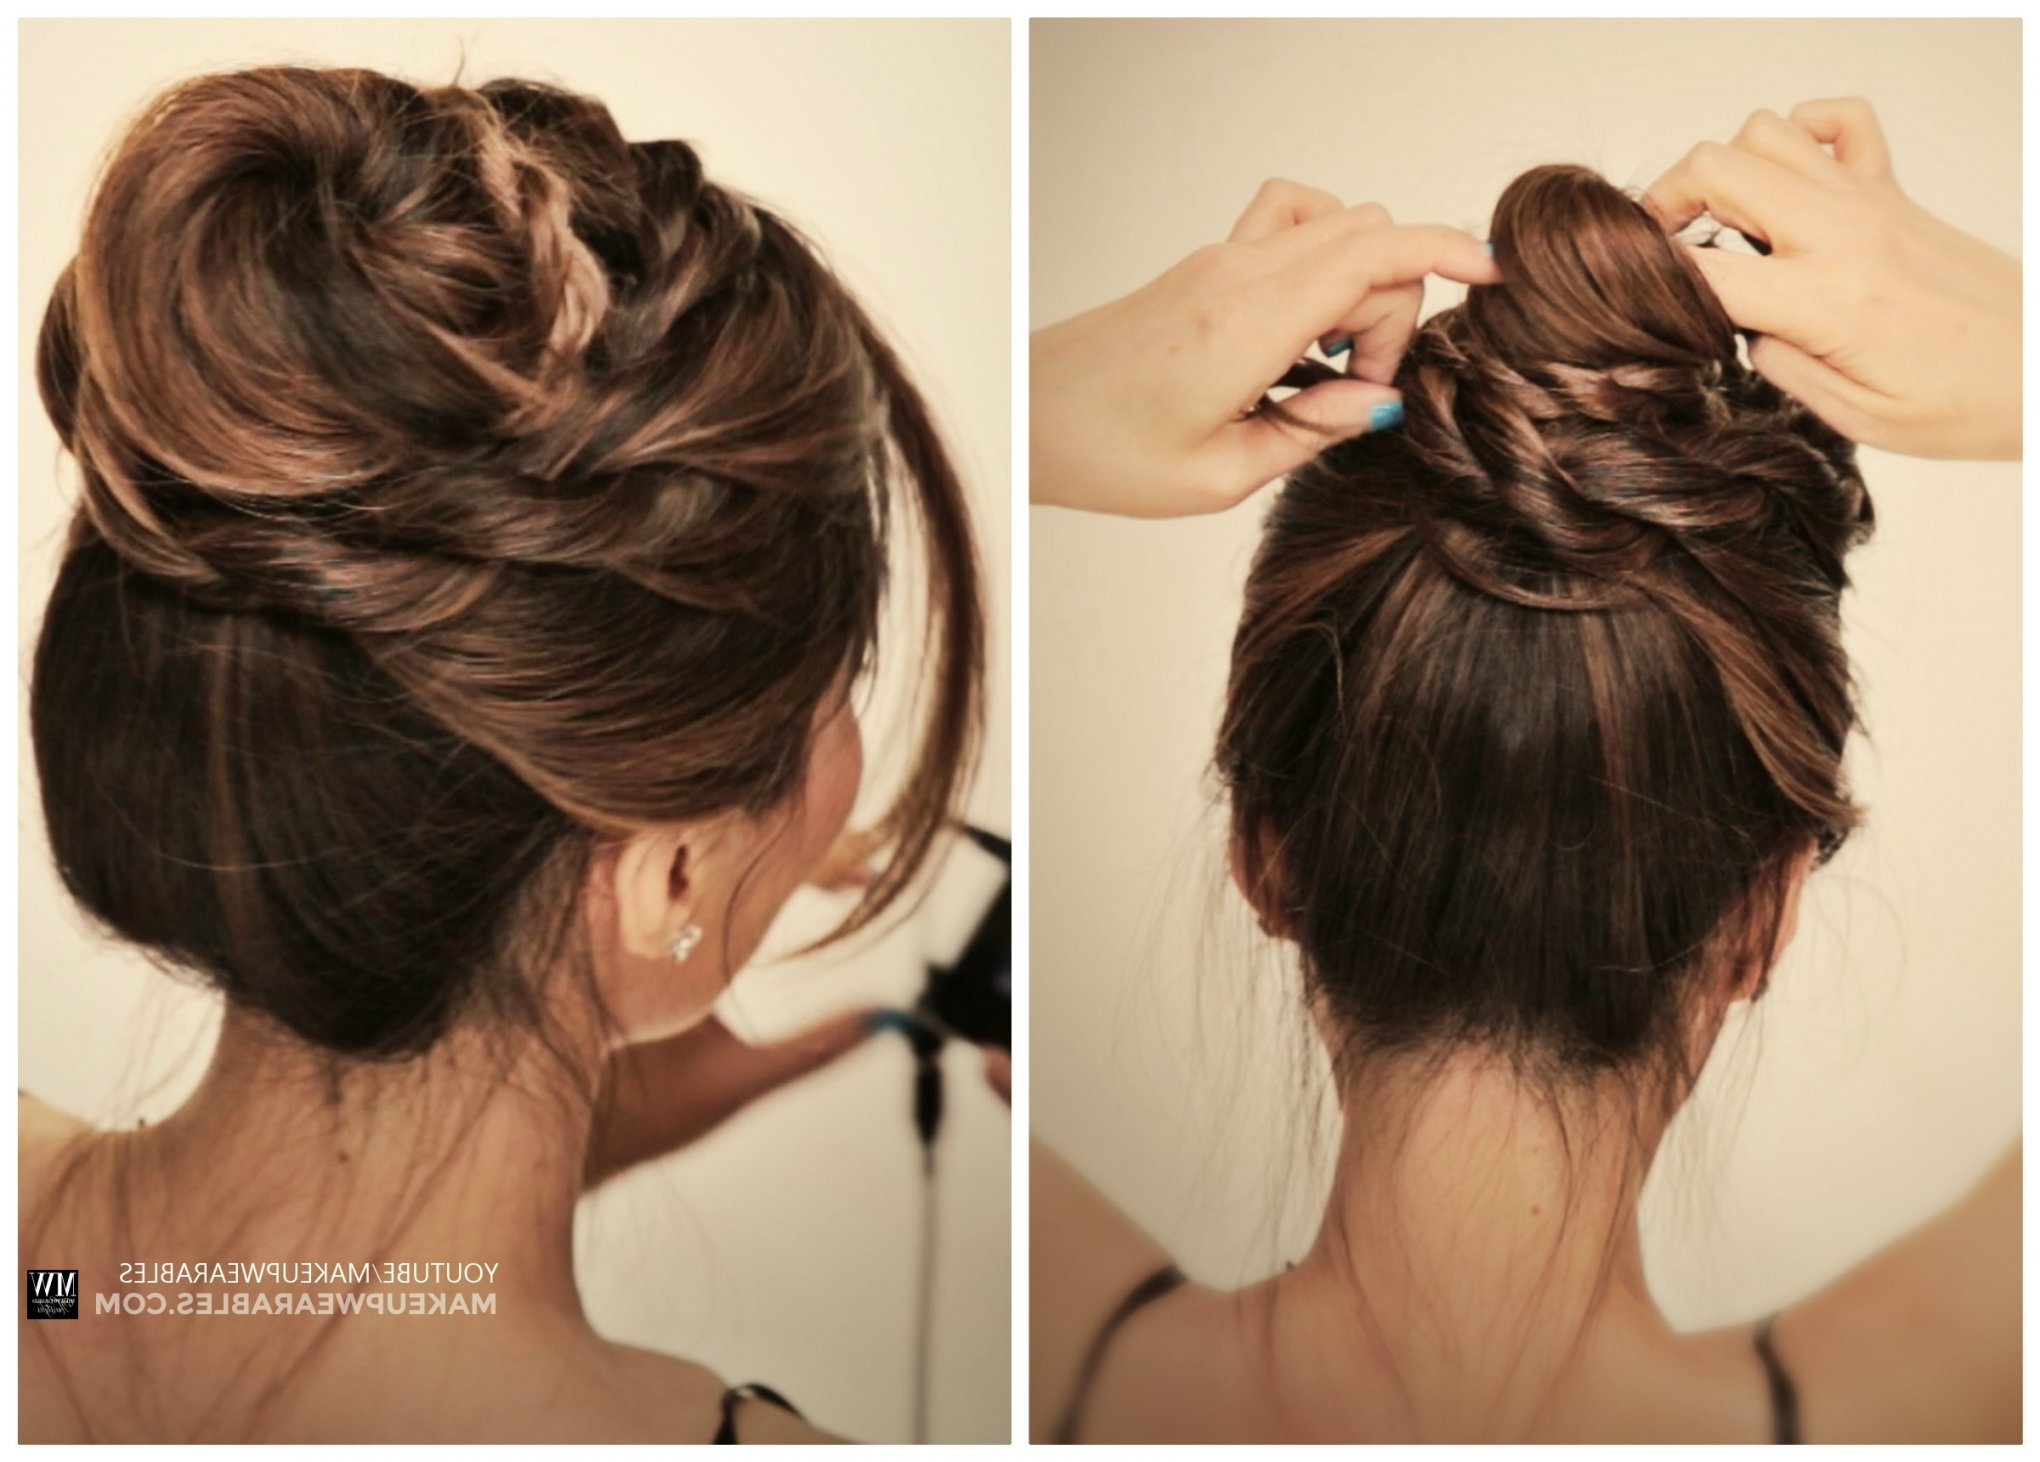 How To: 5 Amazingly Cute + Easy Hairstyles With A Simple Twist Throughout Trendy Cute Easy Wedding Hairstyles For Long Hair (View 9 of 15)